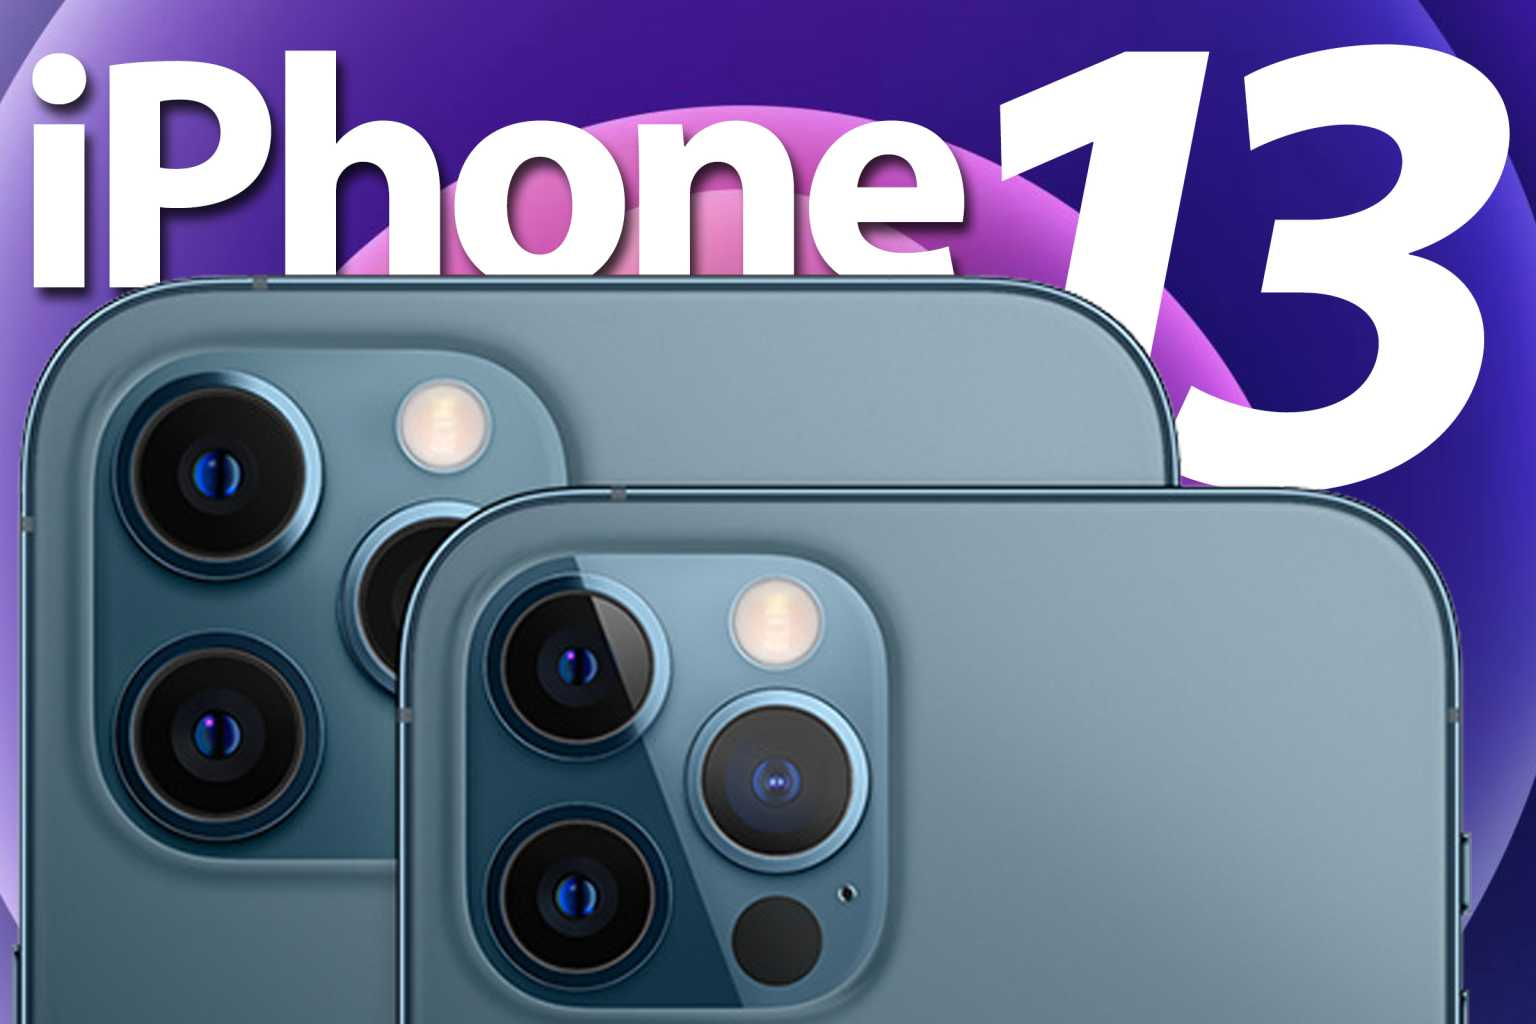 iPhone 13 rumors: Super camera stabilization to expand to all models - UPDATED